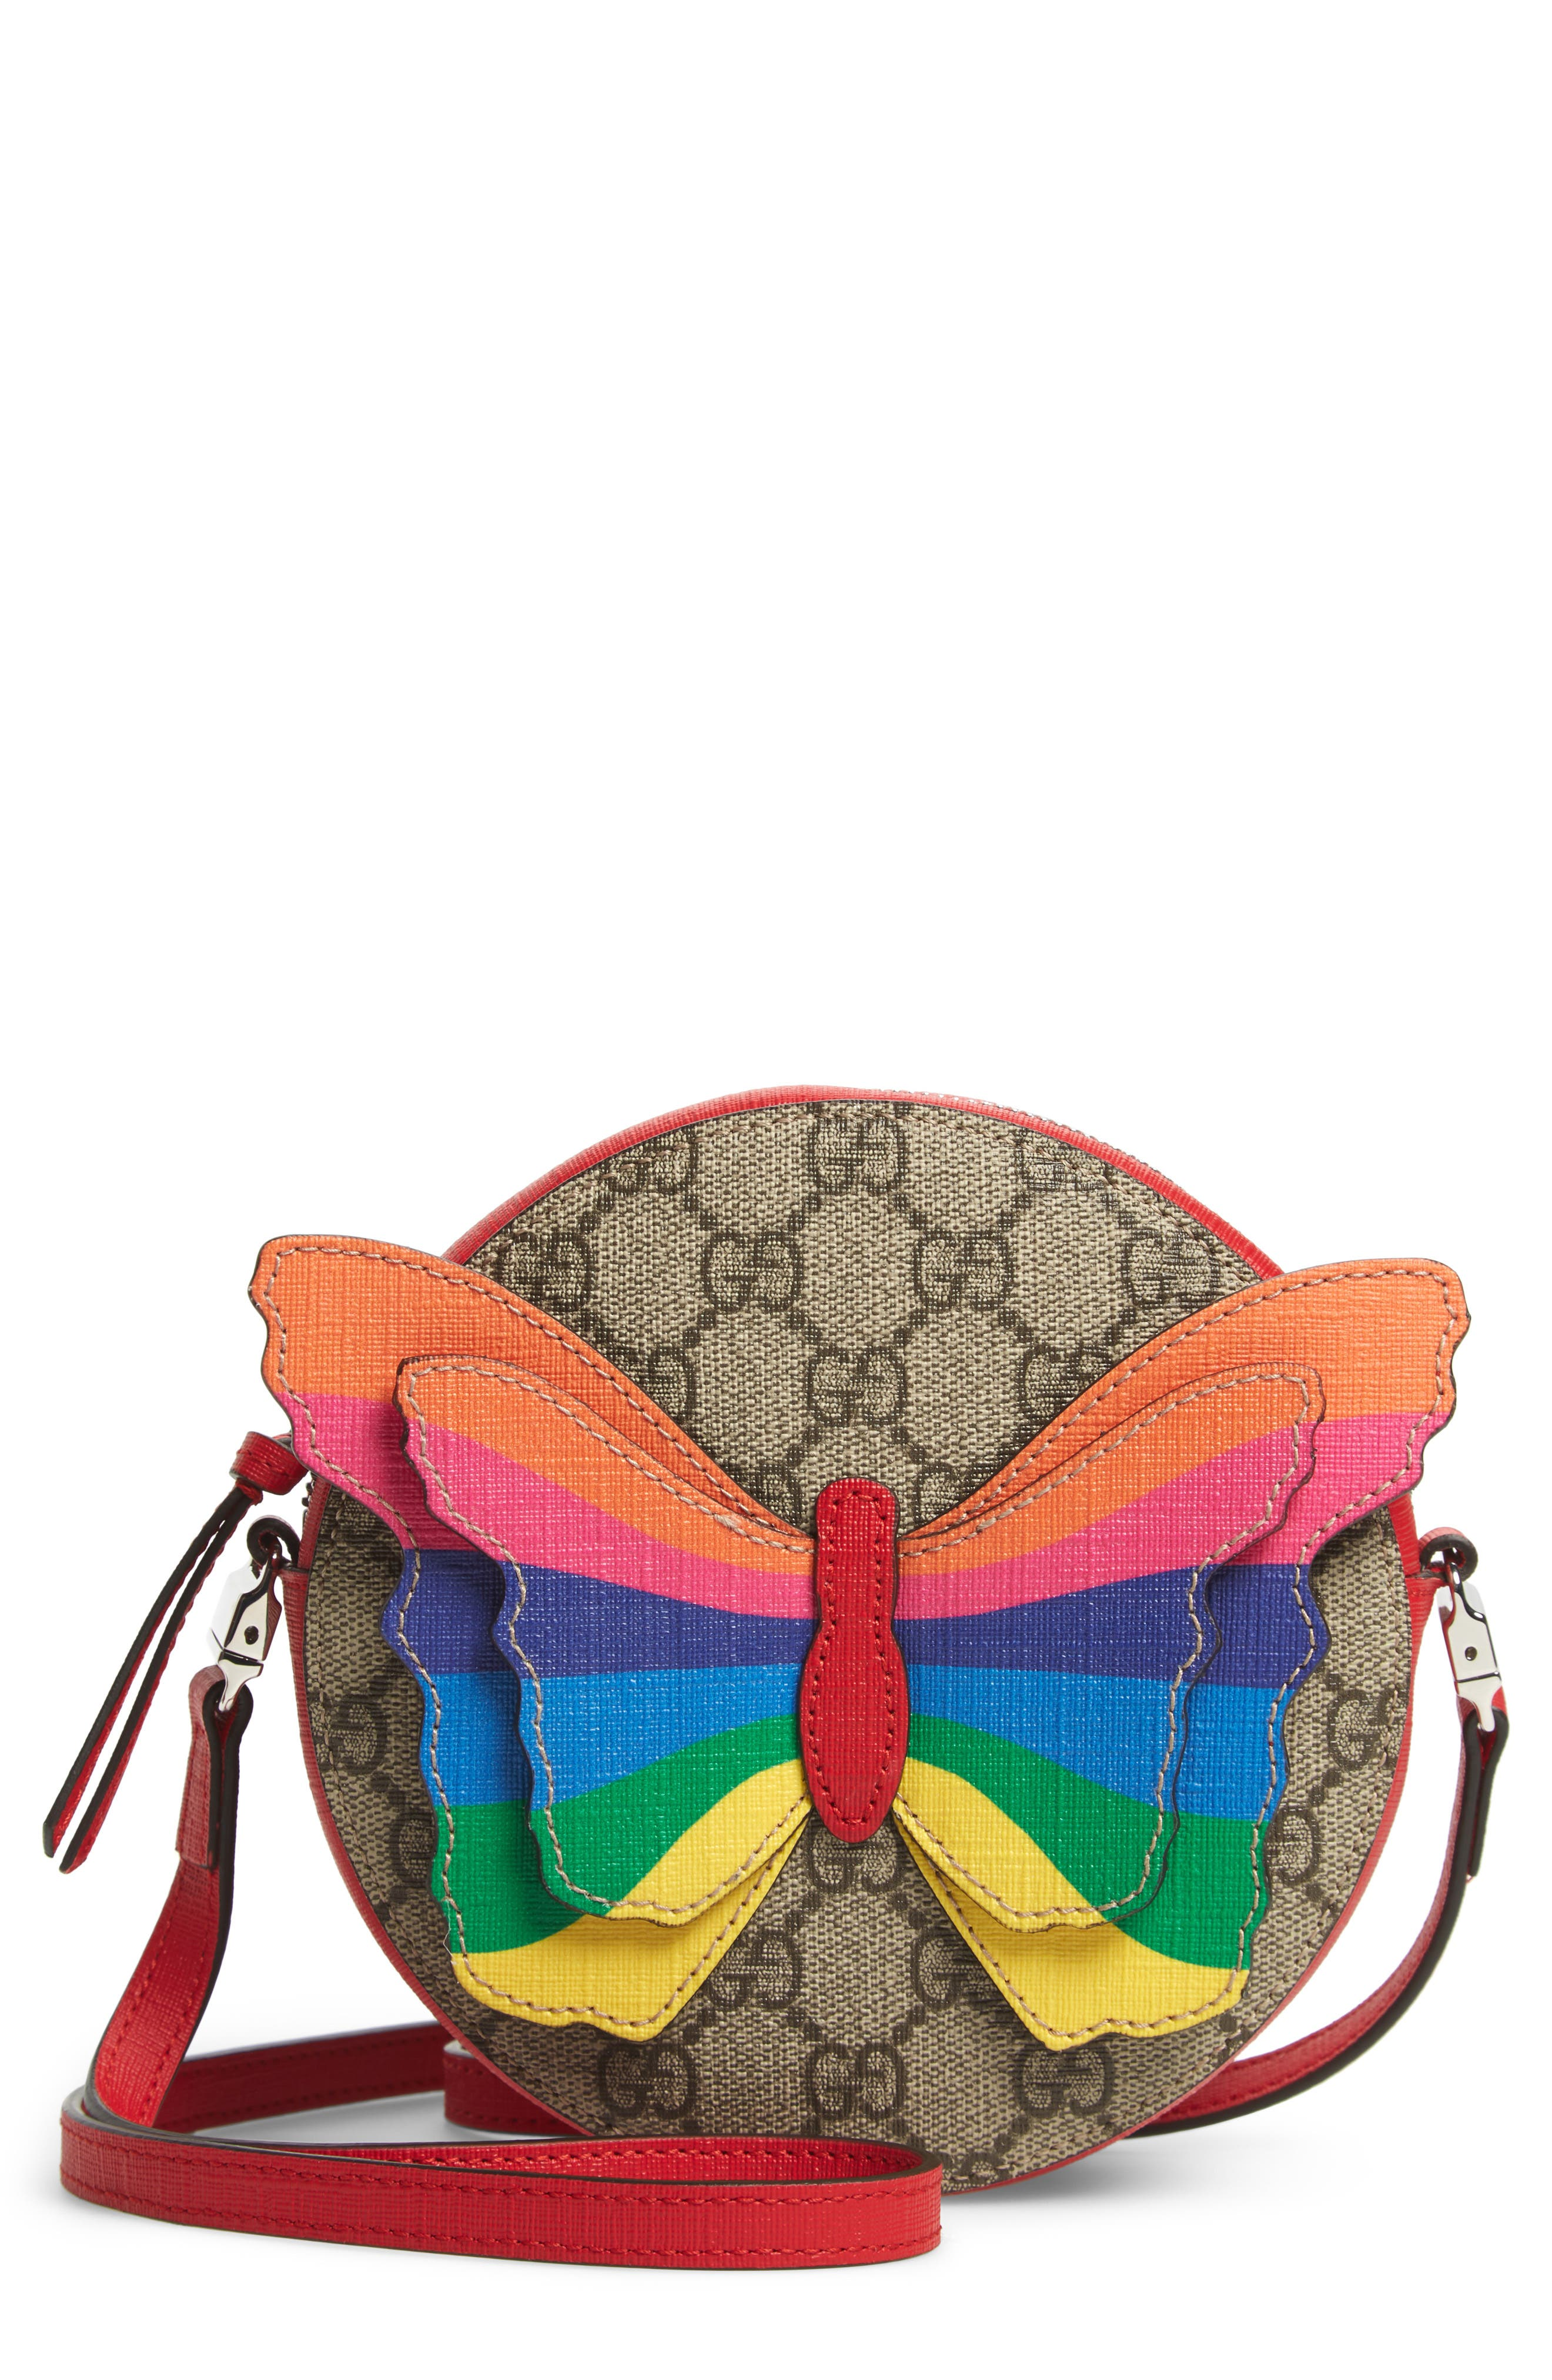 05ed32276a2 Girl s Gucci Gg Supreme Rainbow Butterfly Crossbody Bag - Beige